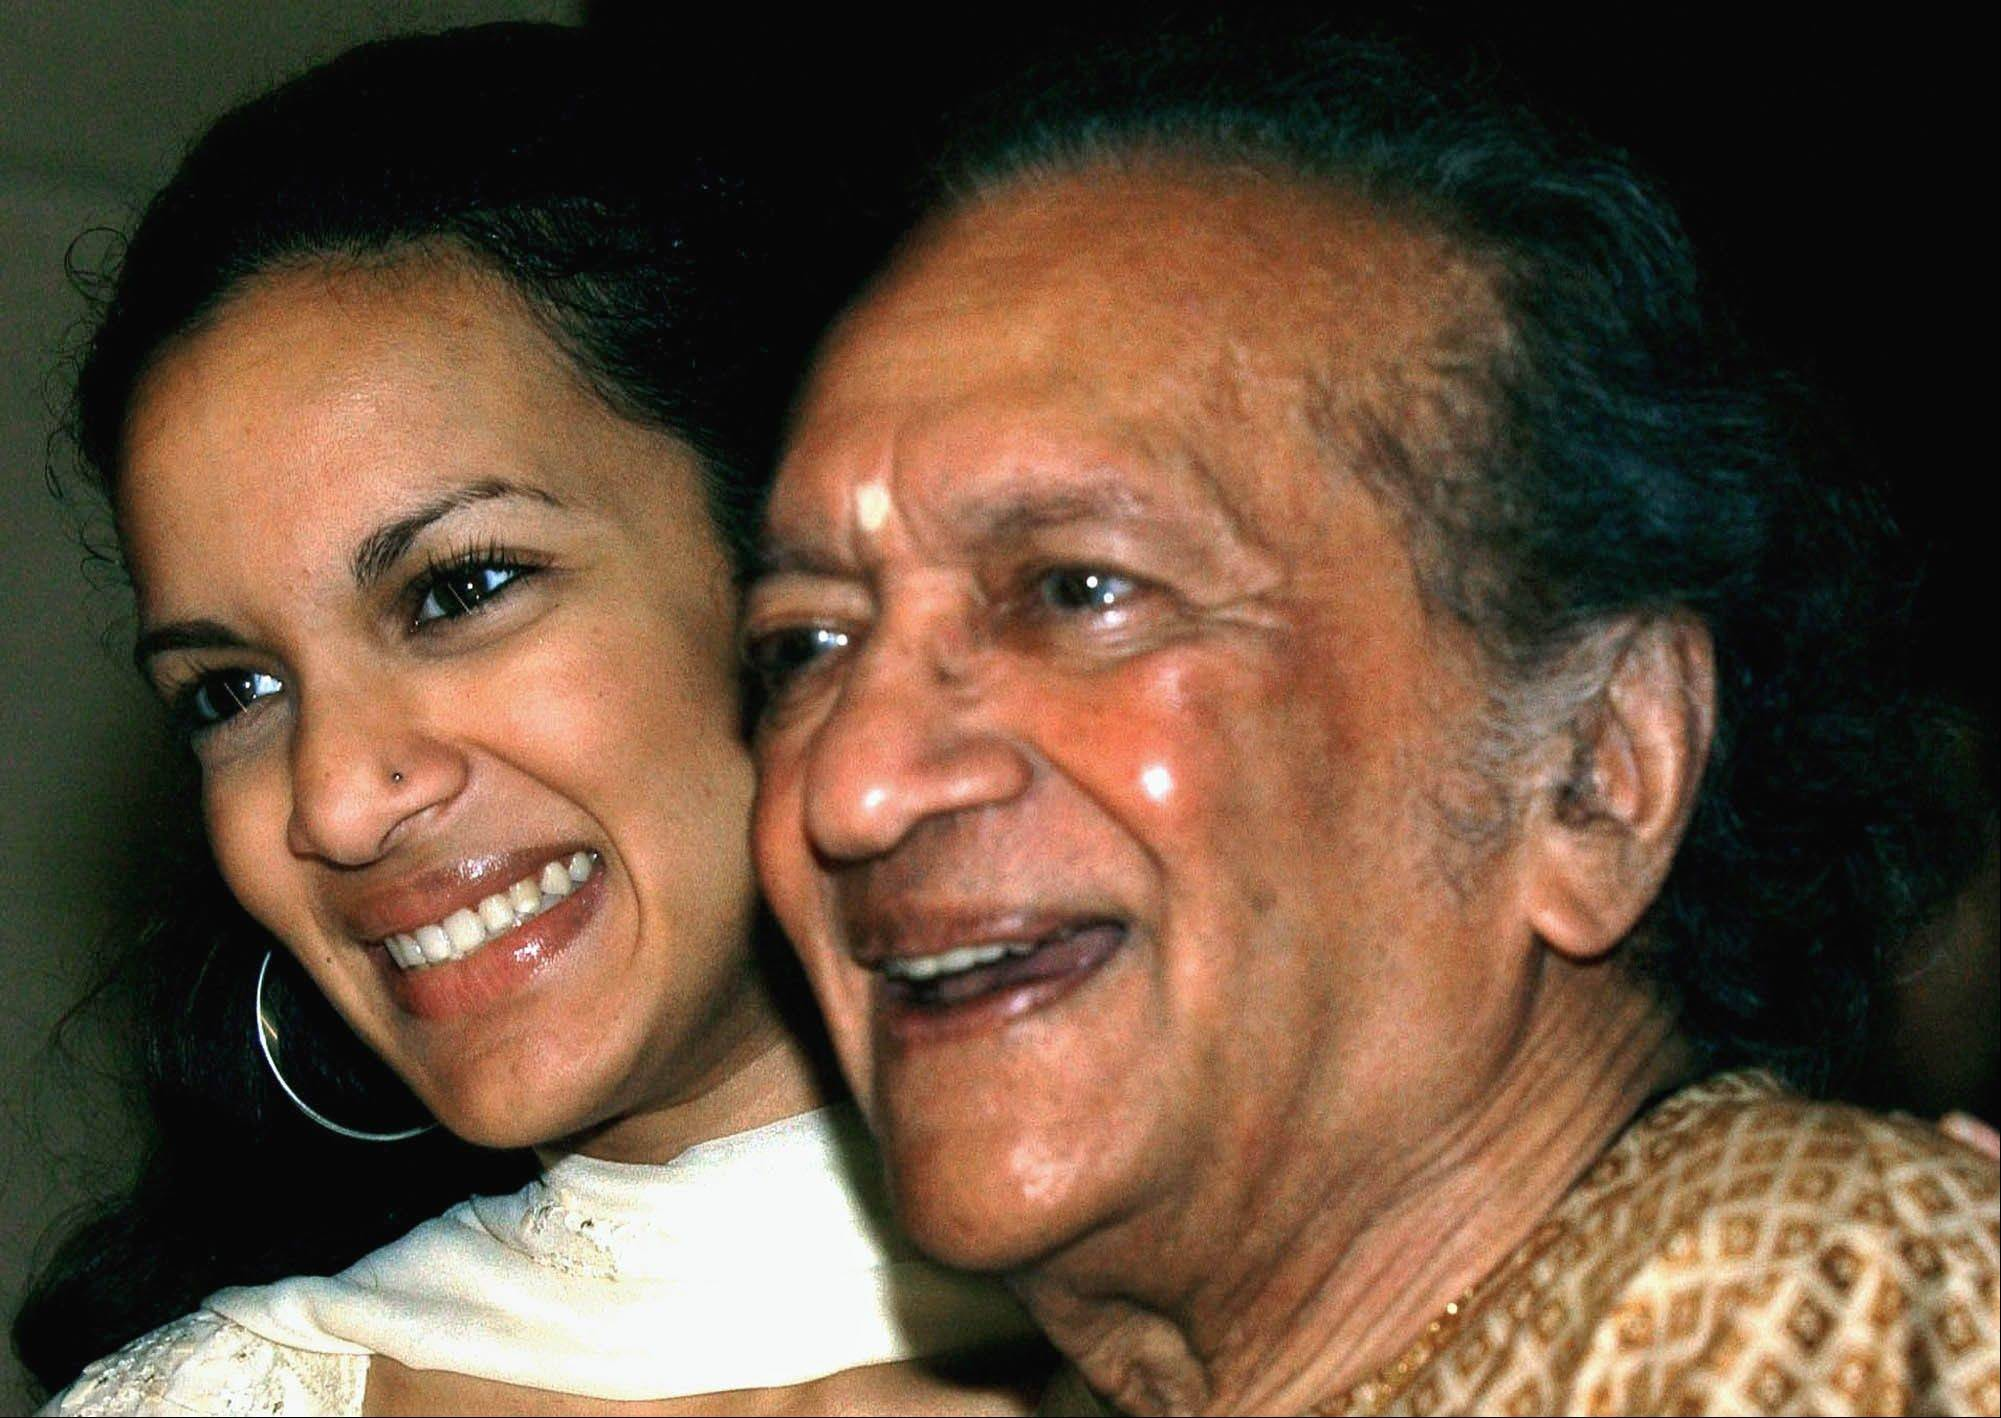 In this Dec. 19, 2002, Indian Sitar maestro Ravi Shankar, right, and daughter Anoushka Shankar smile during a press conference in Calcutta, India. Shankar, the sitar virtuoso who became a hippie musical icon of the 1960s after hobnobbing with the Beatles and who introduced traditional Indian ragas to Western audiences over an eight-decade career, has died. He was 92.